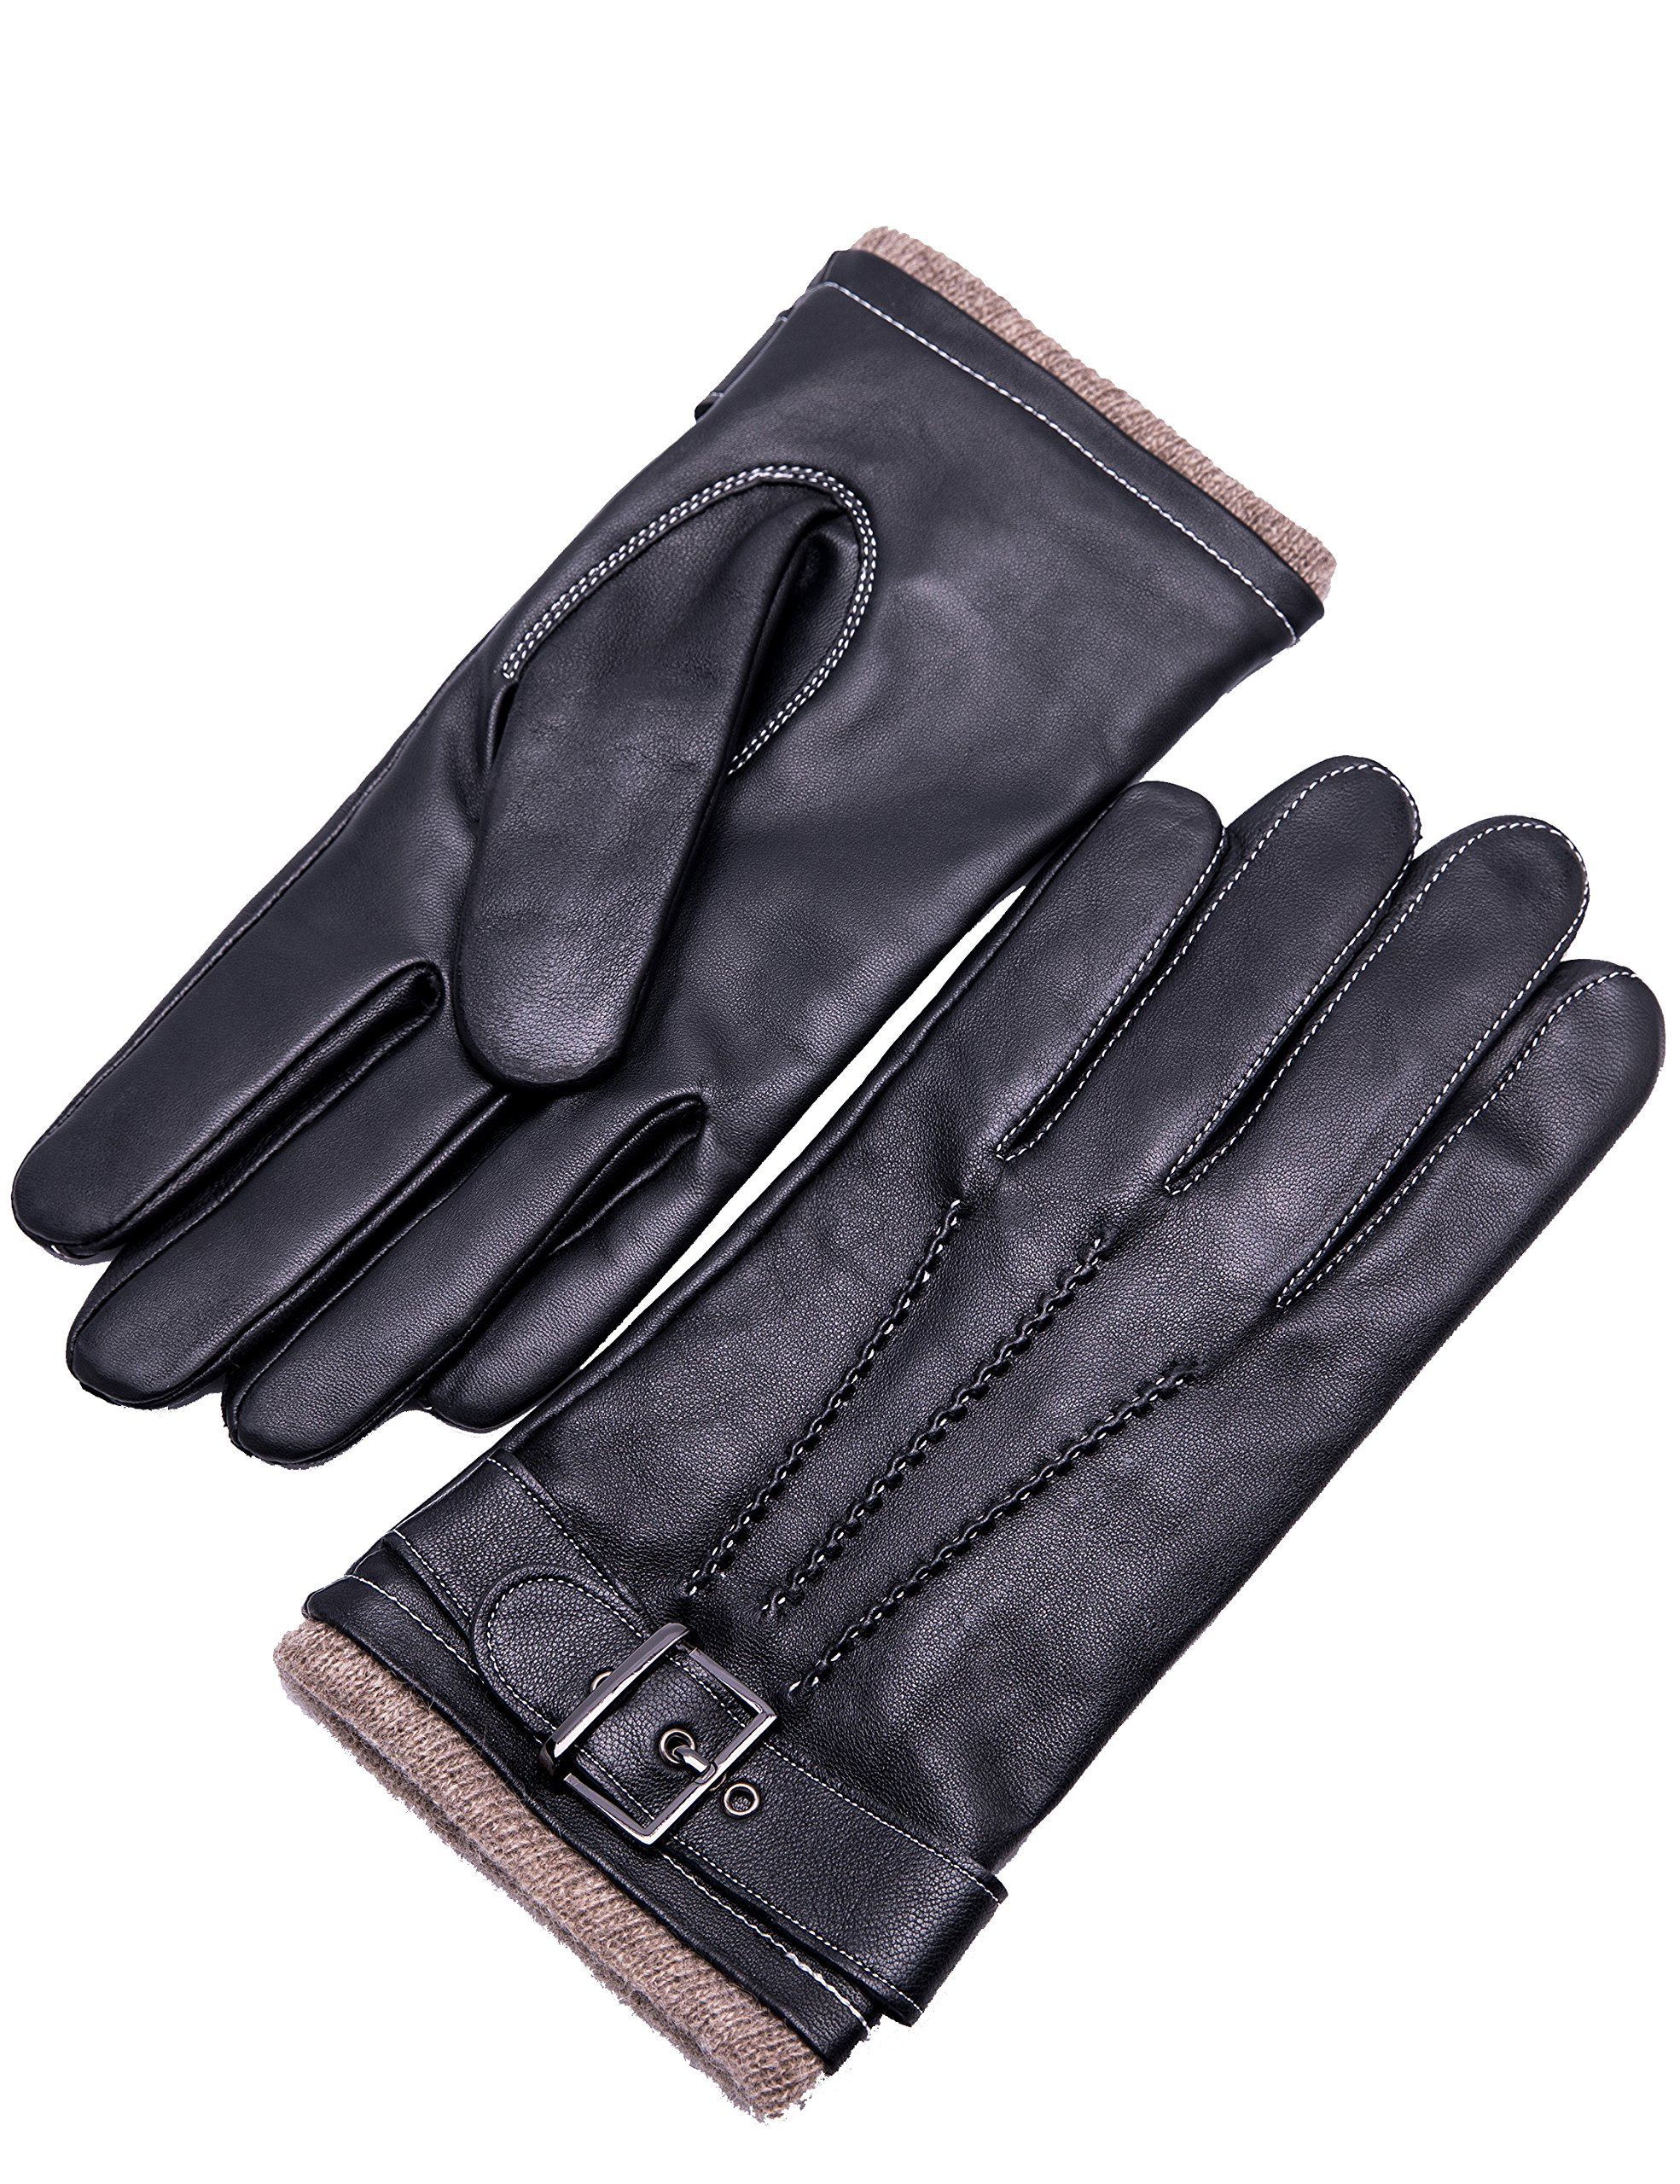 YISEVEN Men's Cashmere Lined Touchscreen Lambskin Leather Gloves Three Points and Buckle Belt Slim Hand Warm Fur Lined for Winter Heated Luxury Dress Xmas Gifts Motorcycle Driving, Black 10''/XL